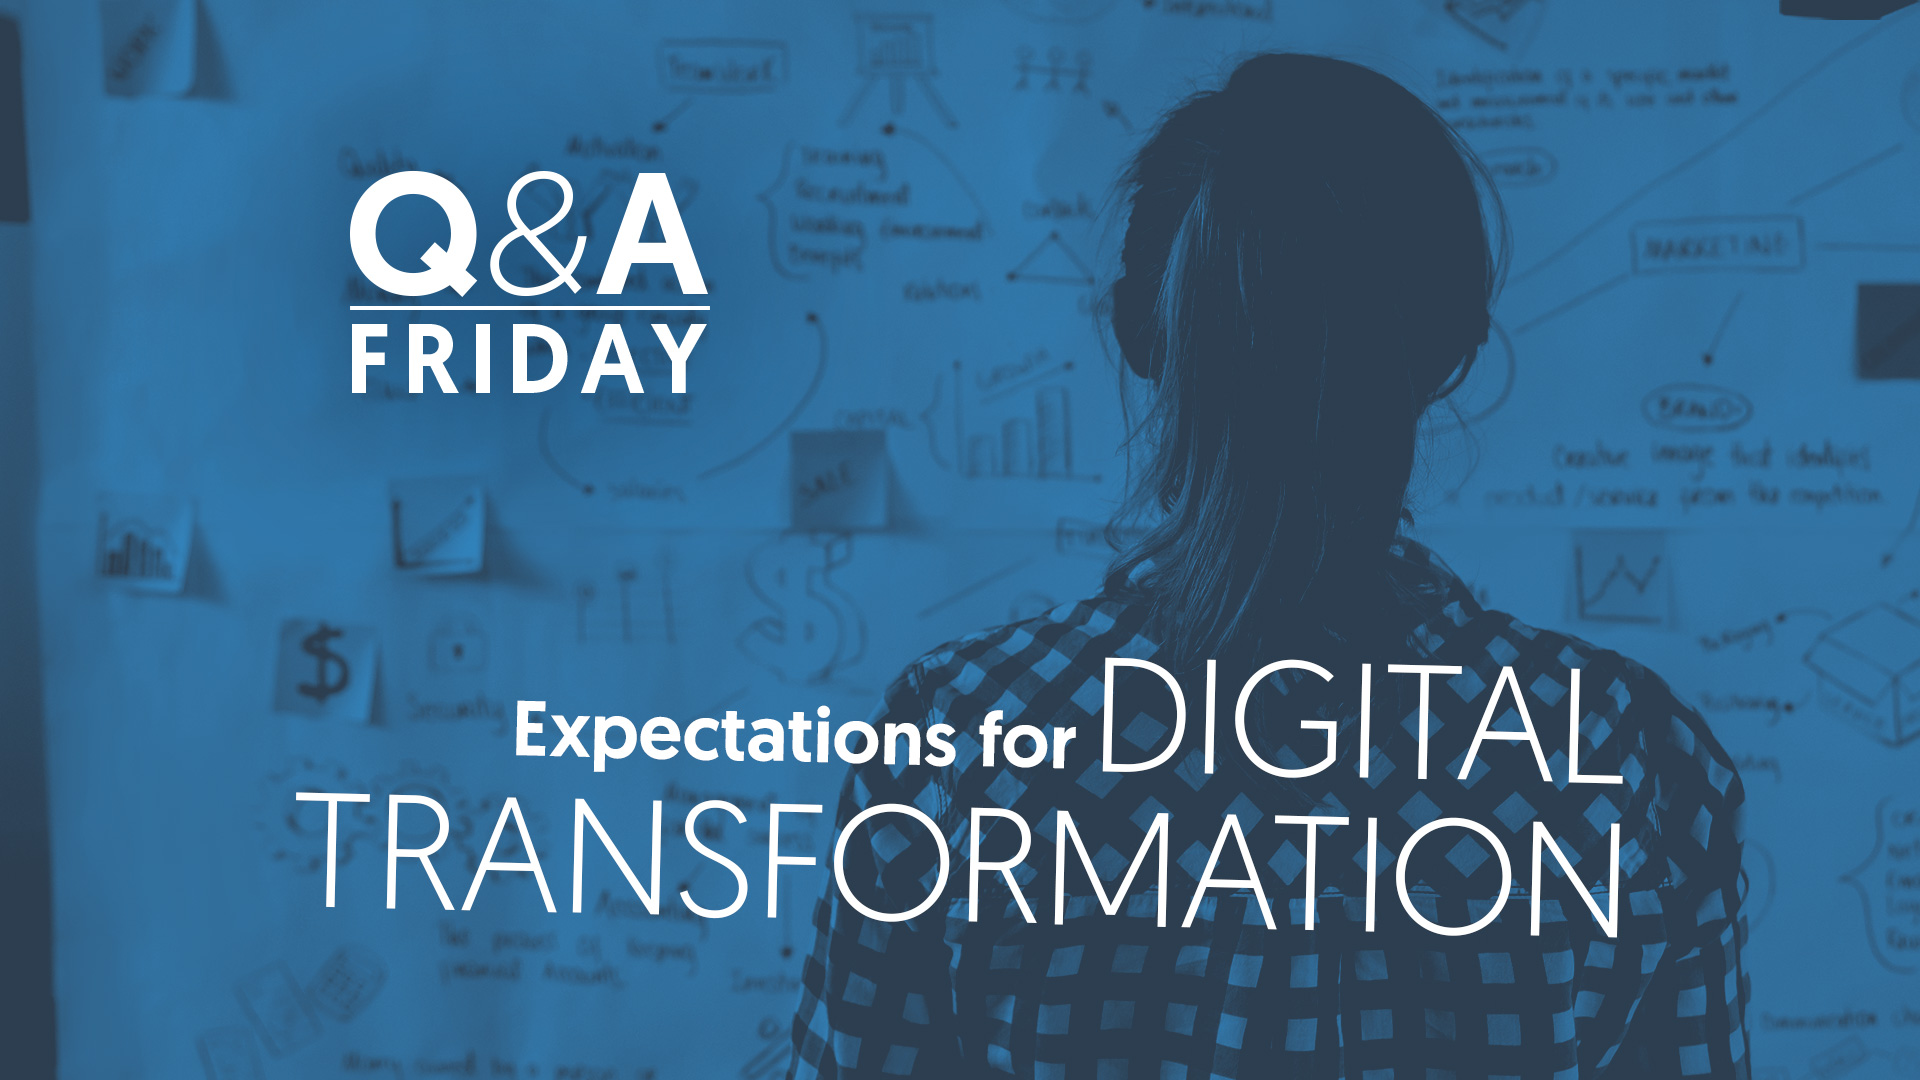 Q&A-EXPECTATIONS-for-DT-1